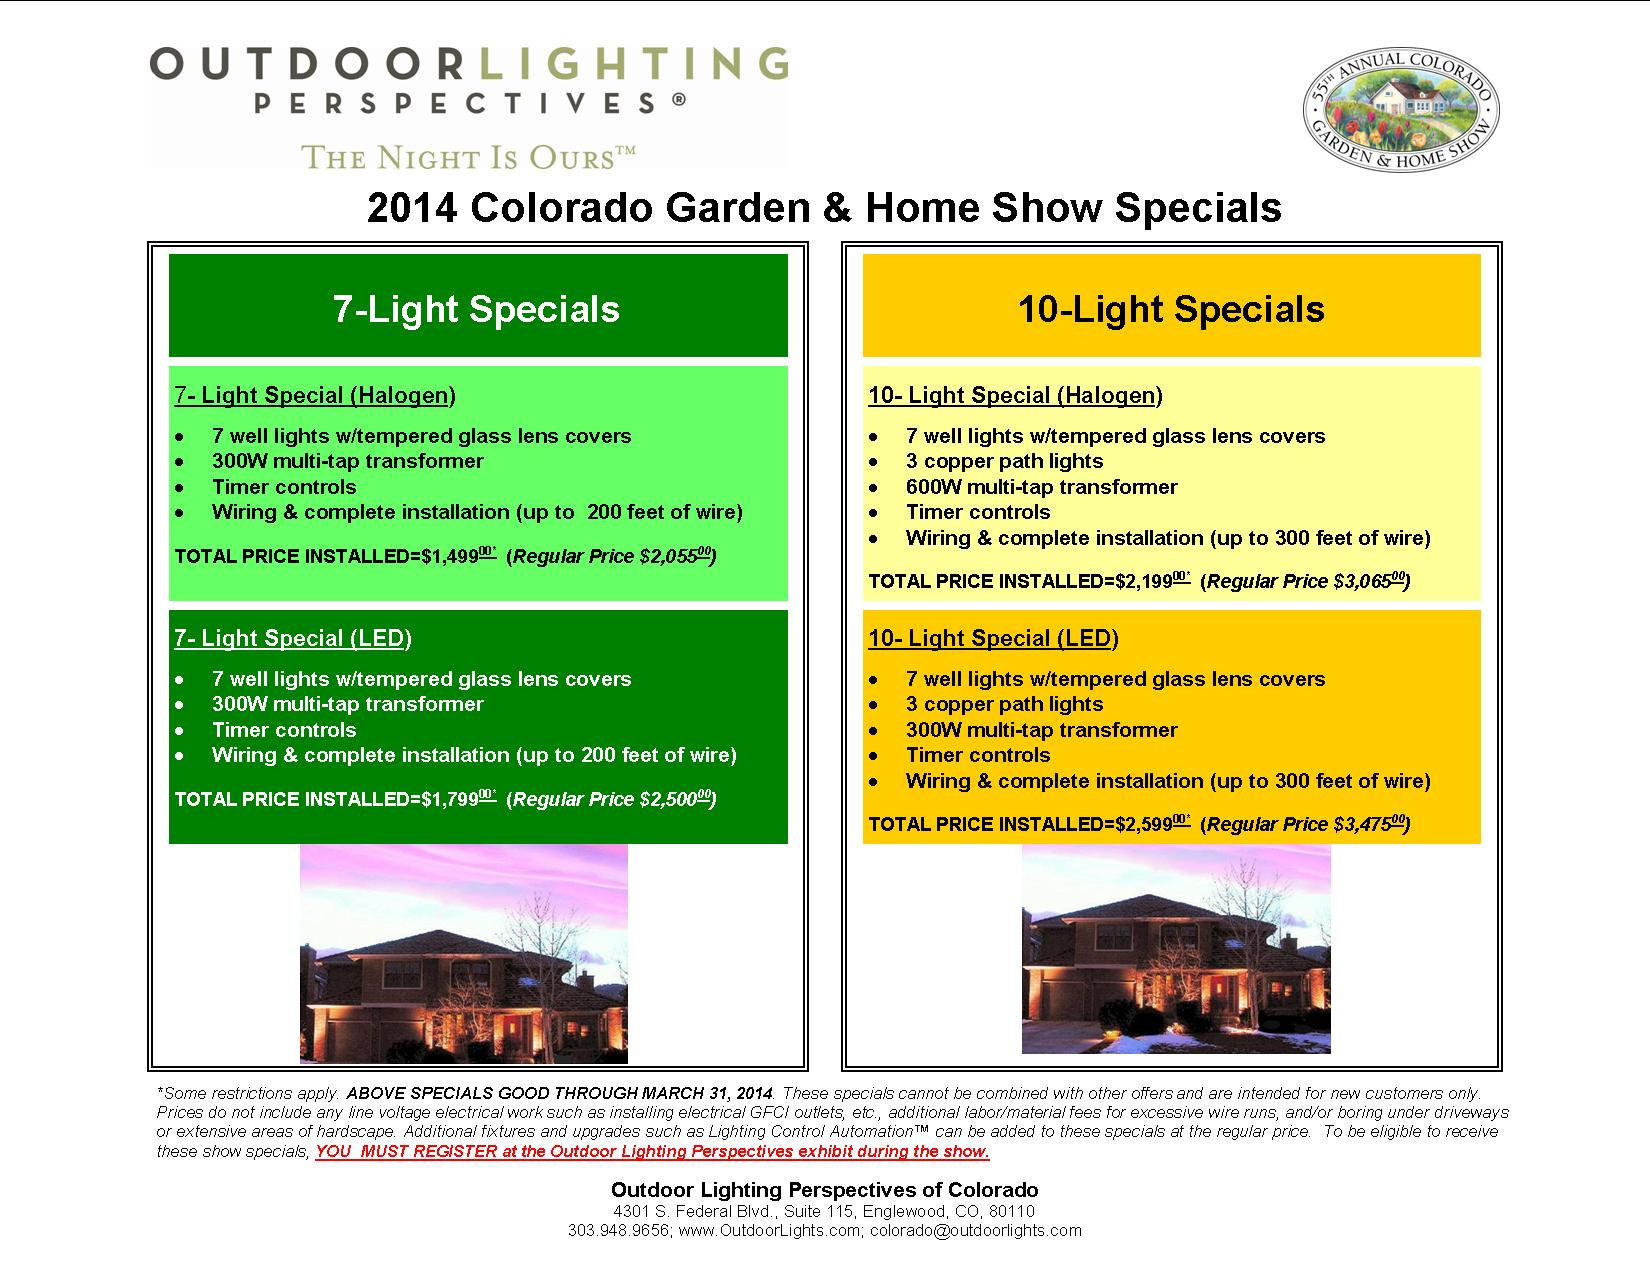 Outdoor Lighting Specials At The 2014 Colorado Garden And